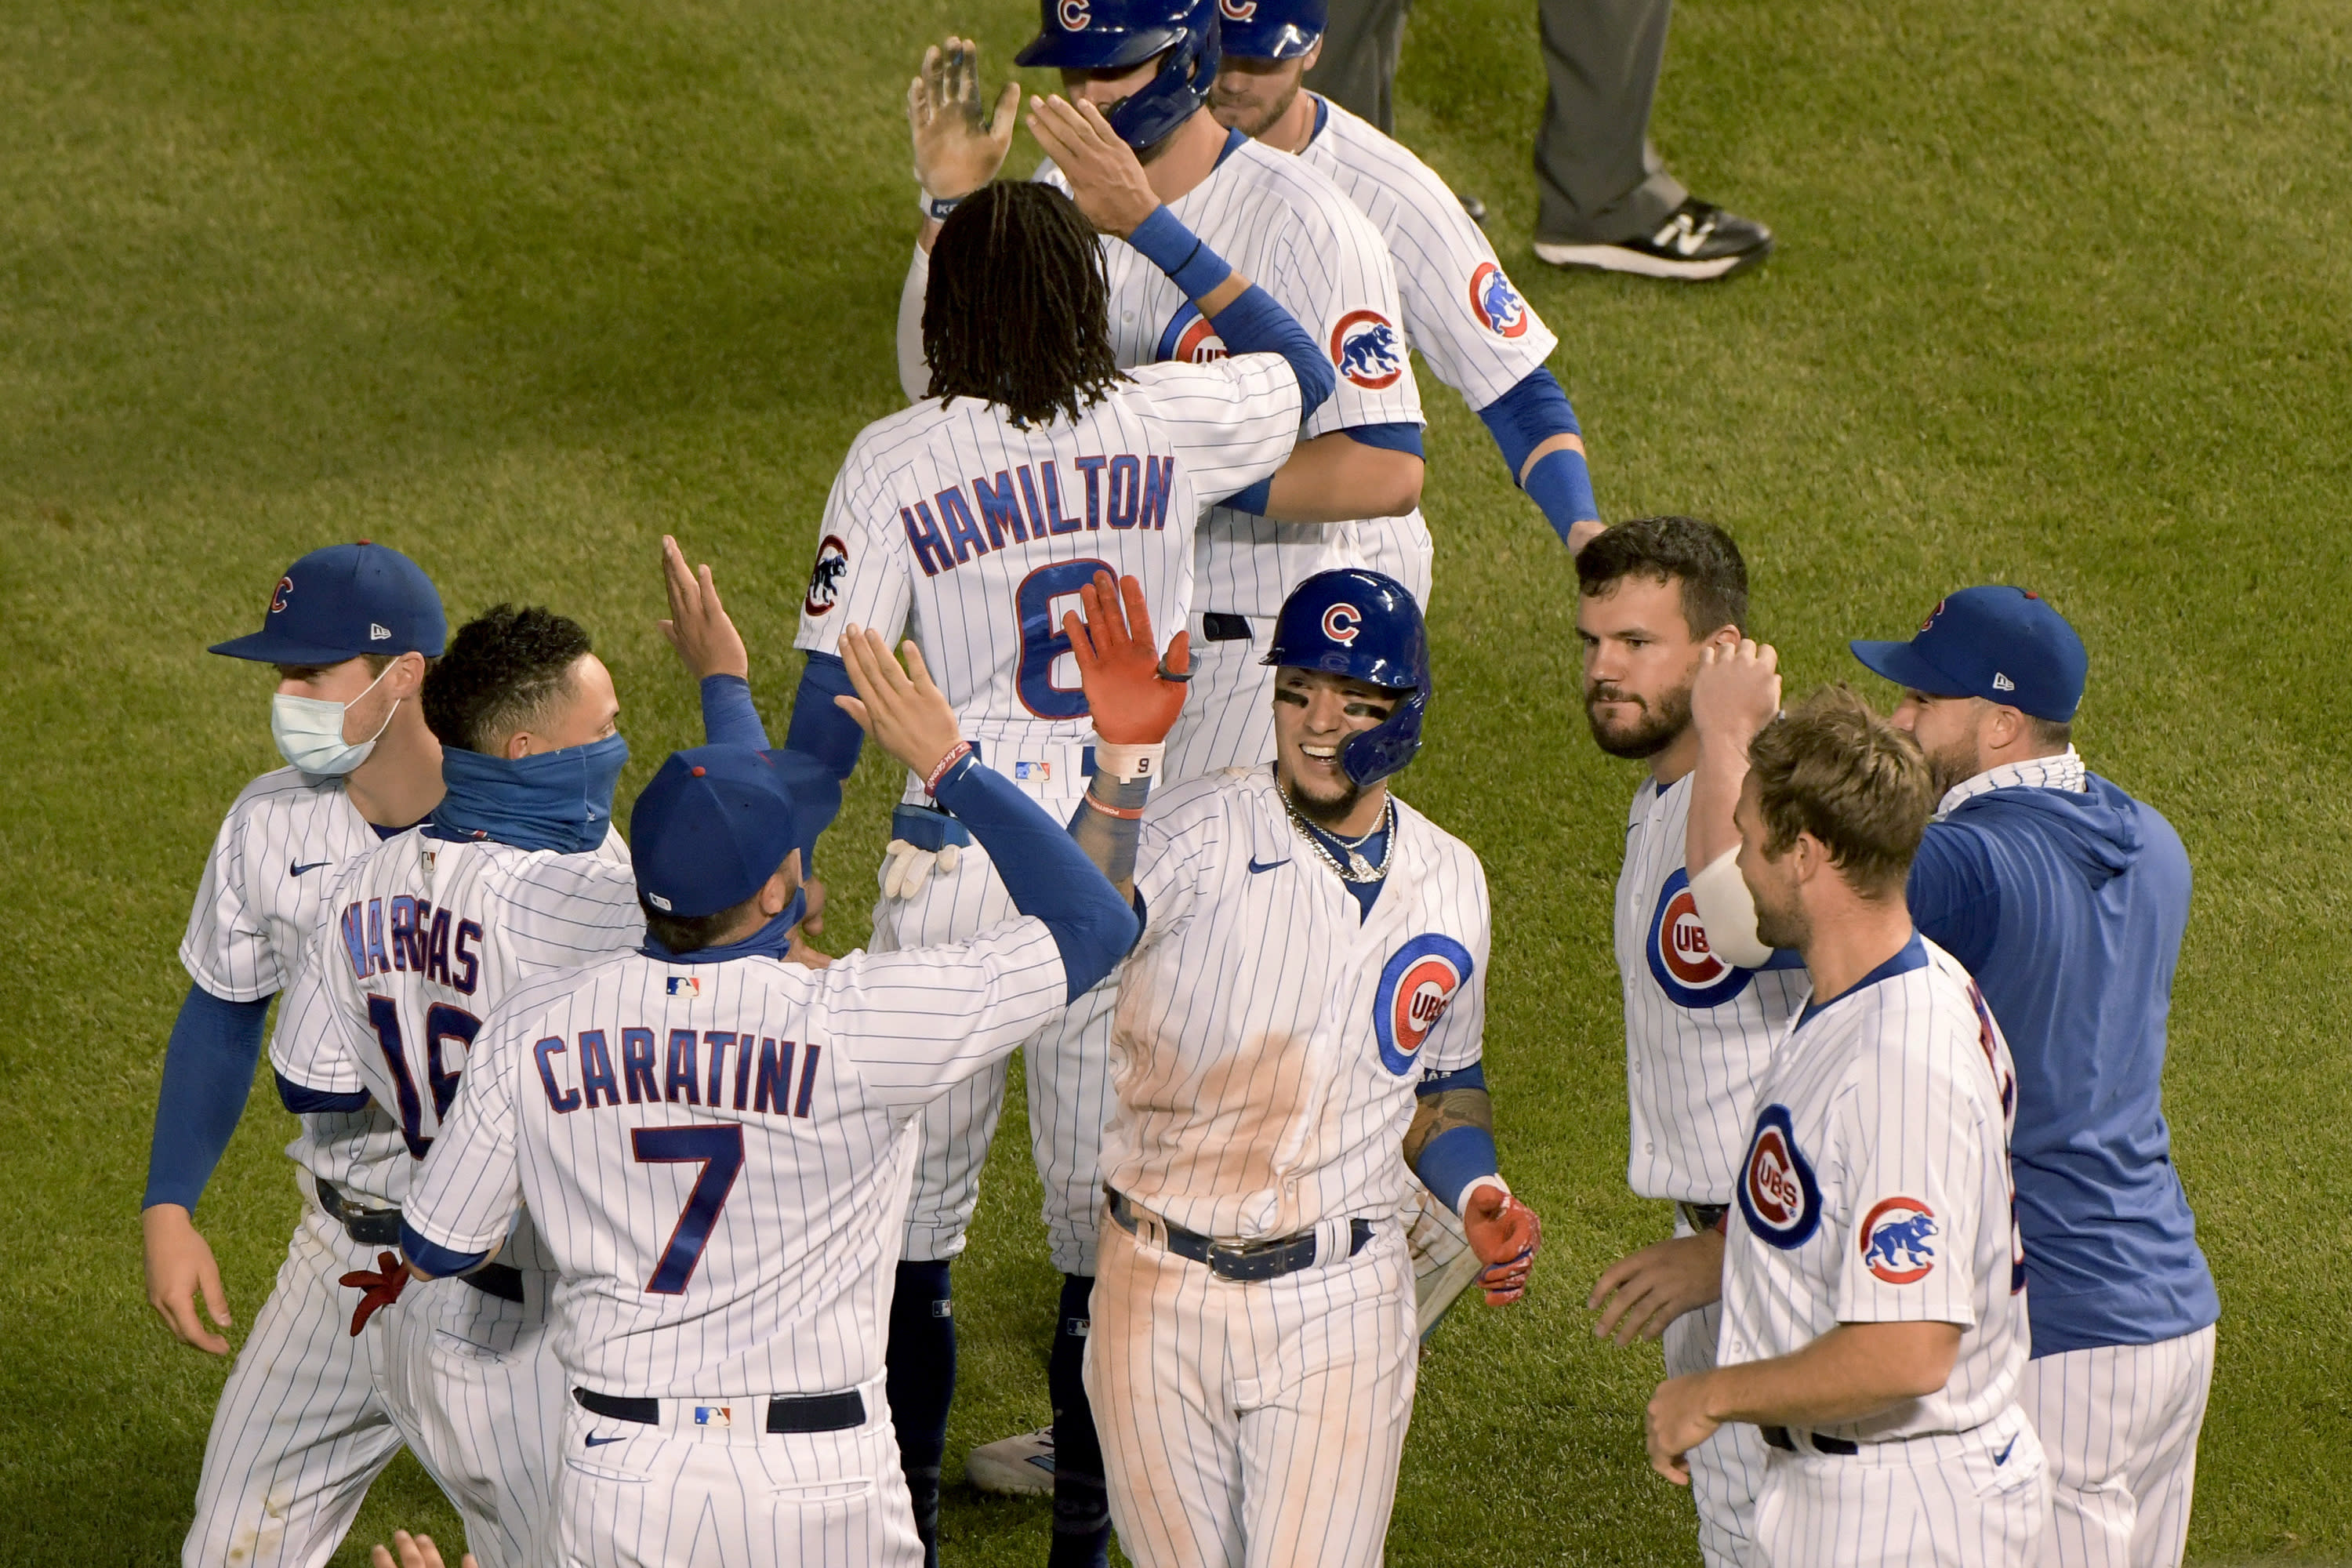 Chicago Cubs' Javier Baez (9) celebrates with teammates after driving in the winning run during the 10th inning against the Cleveland Indians in a baseball game Wednesday, Sept. 16, 2020, in Chicago. (AP Photo/Mark Black)